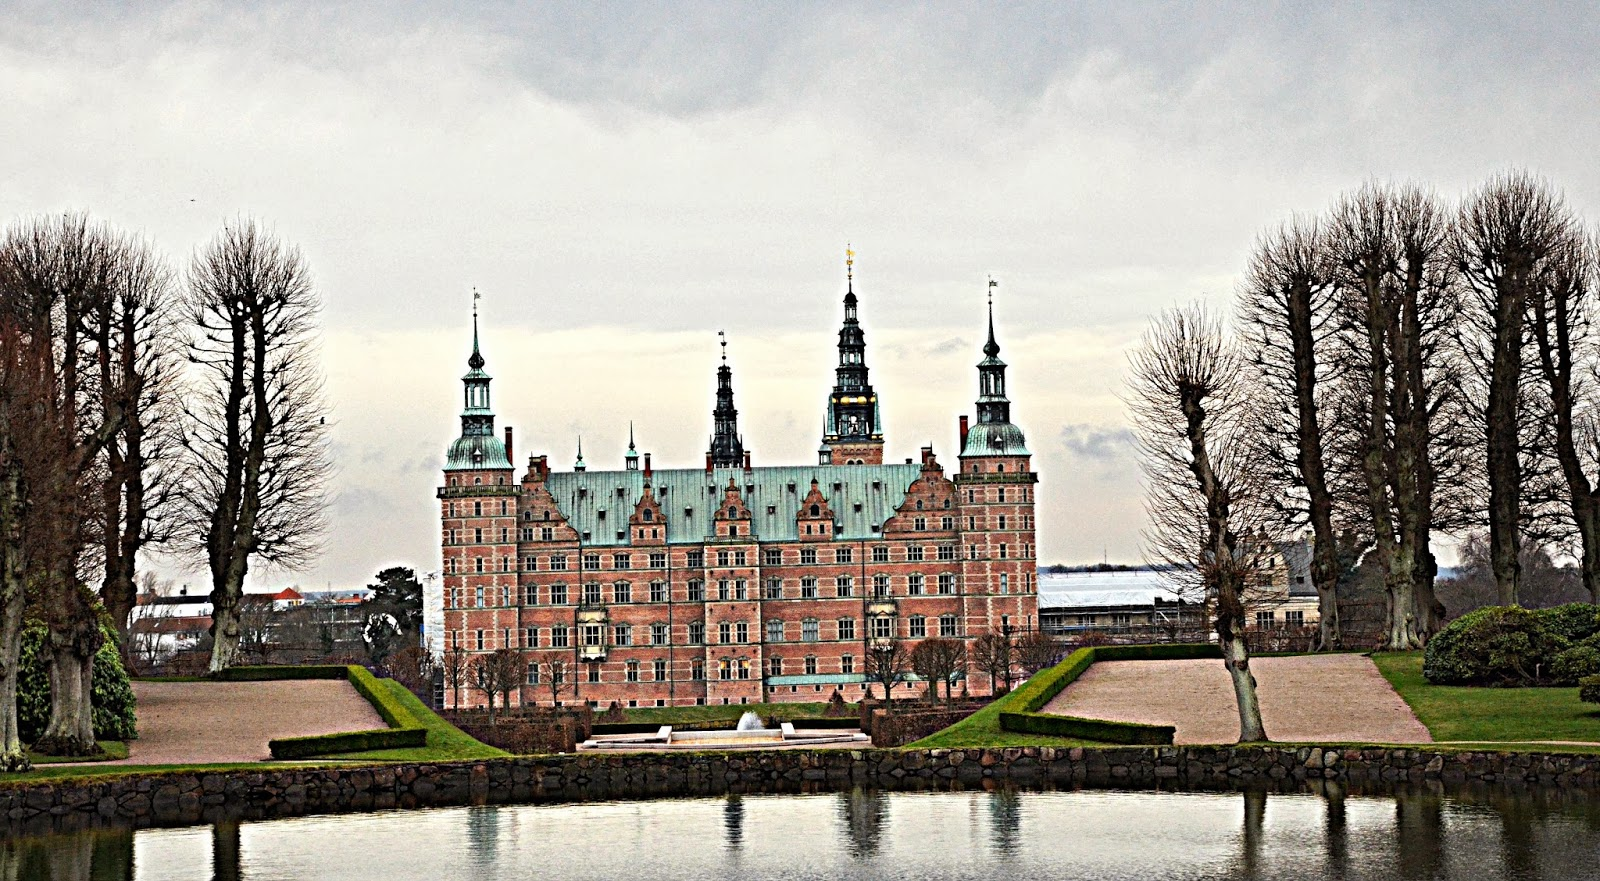 The museum of national history at frederiksborg castle copenhagen - I Hope You Liked This Little Tour Of The Frederiksborg Slot I Will Write About Fredensborg And Rosenborg In My Next Posts Let Me Know What Your Favorite